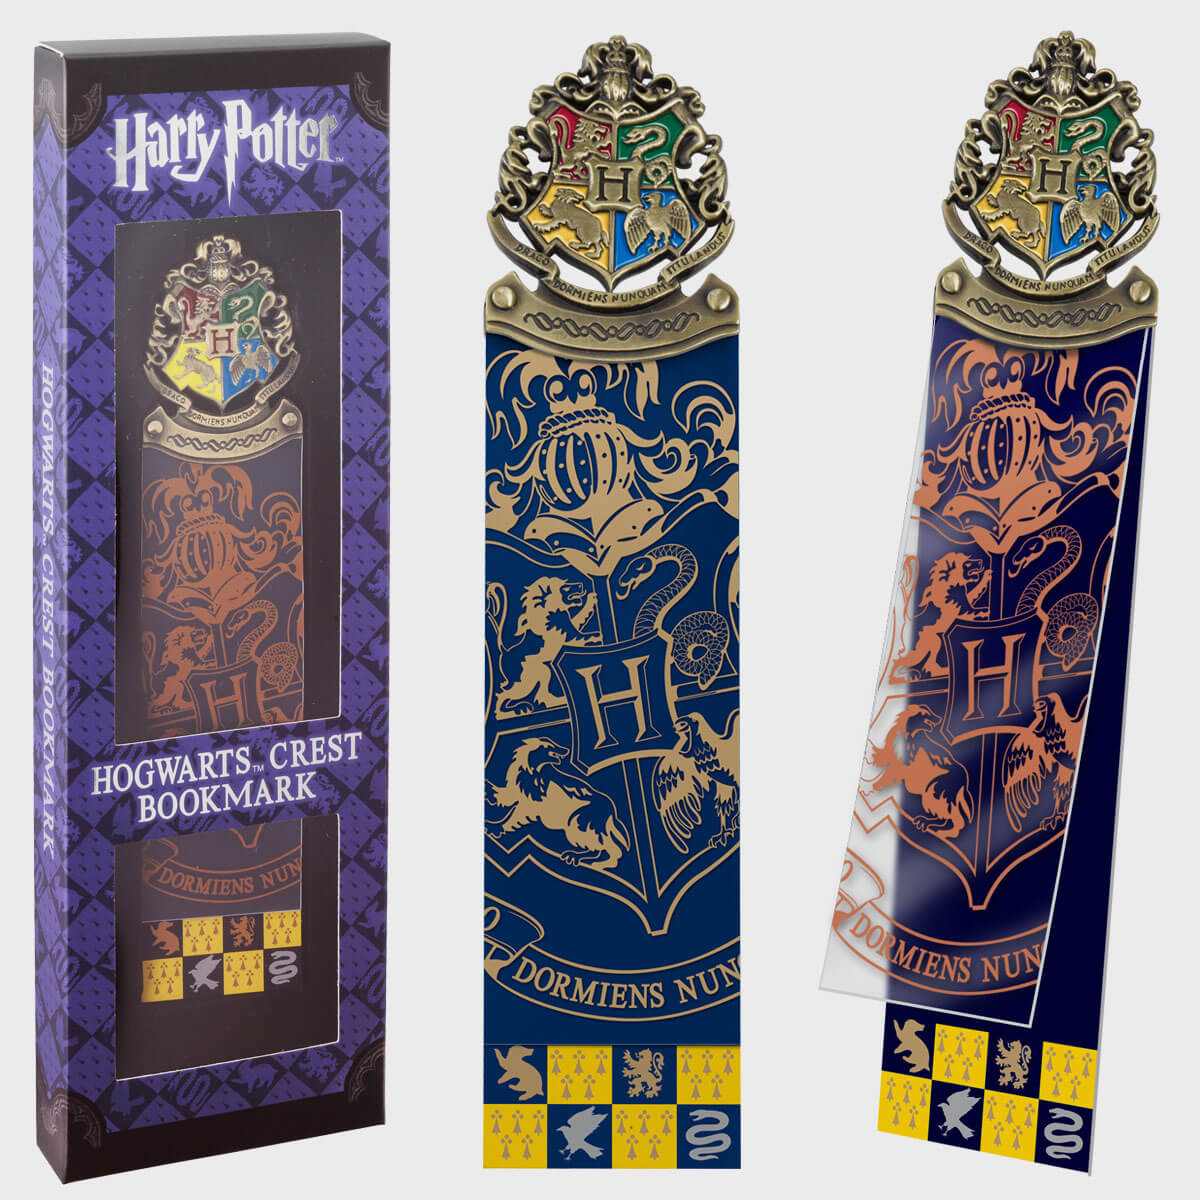 Harry Potter Hogwarts Bookmark